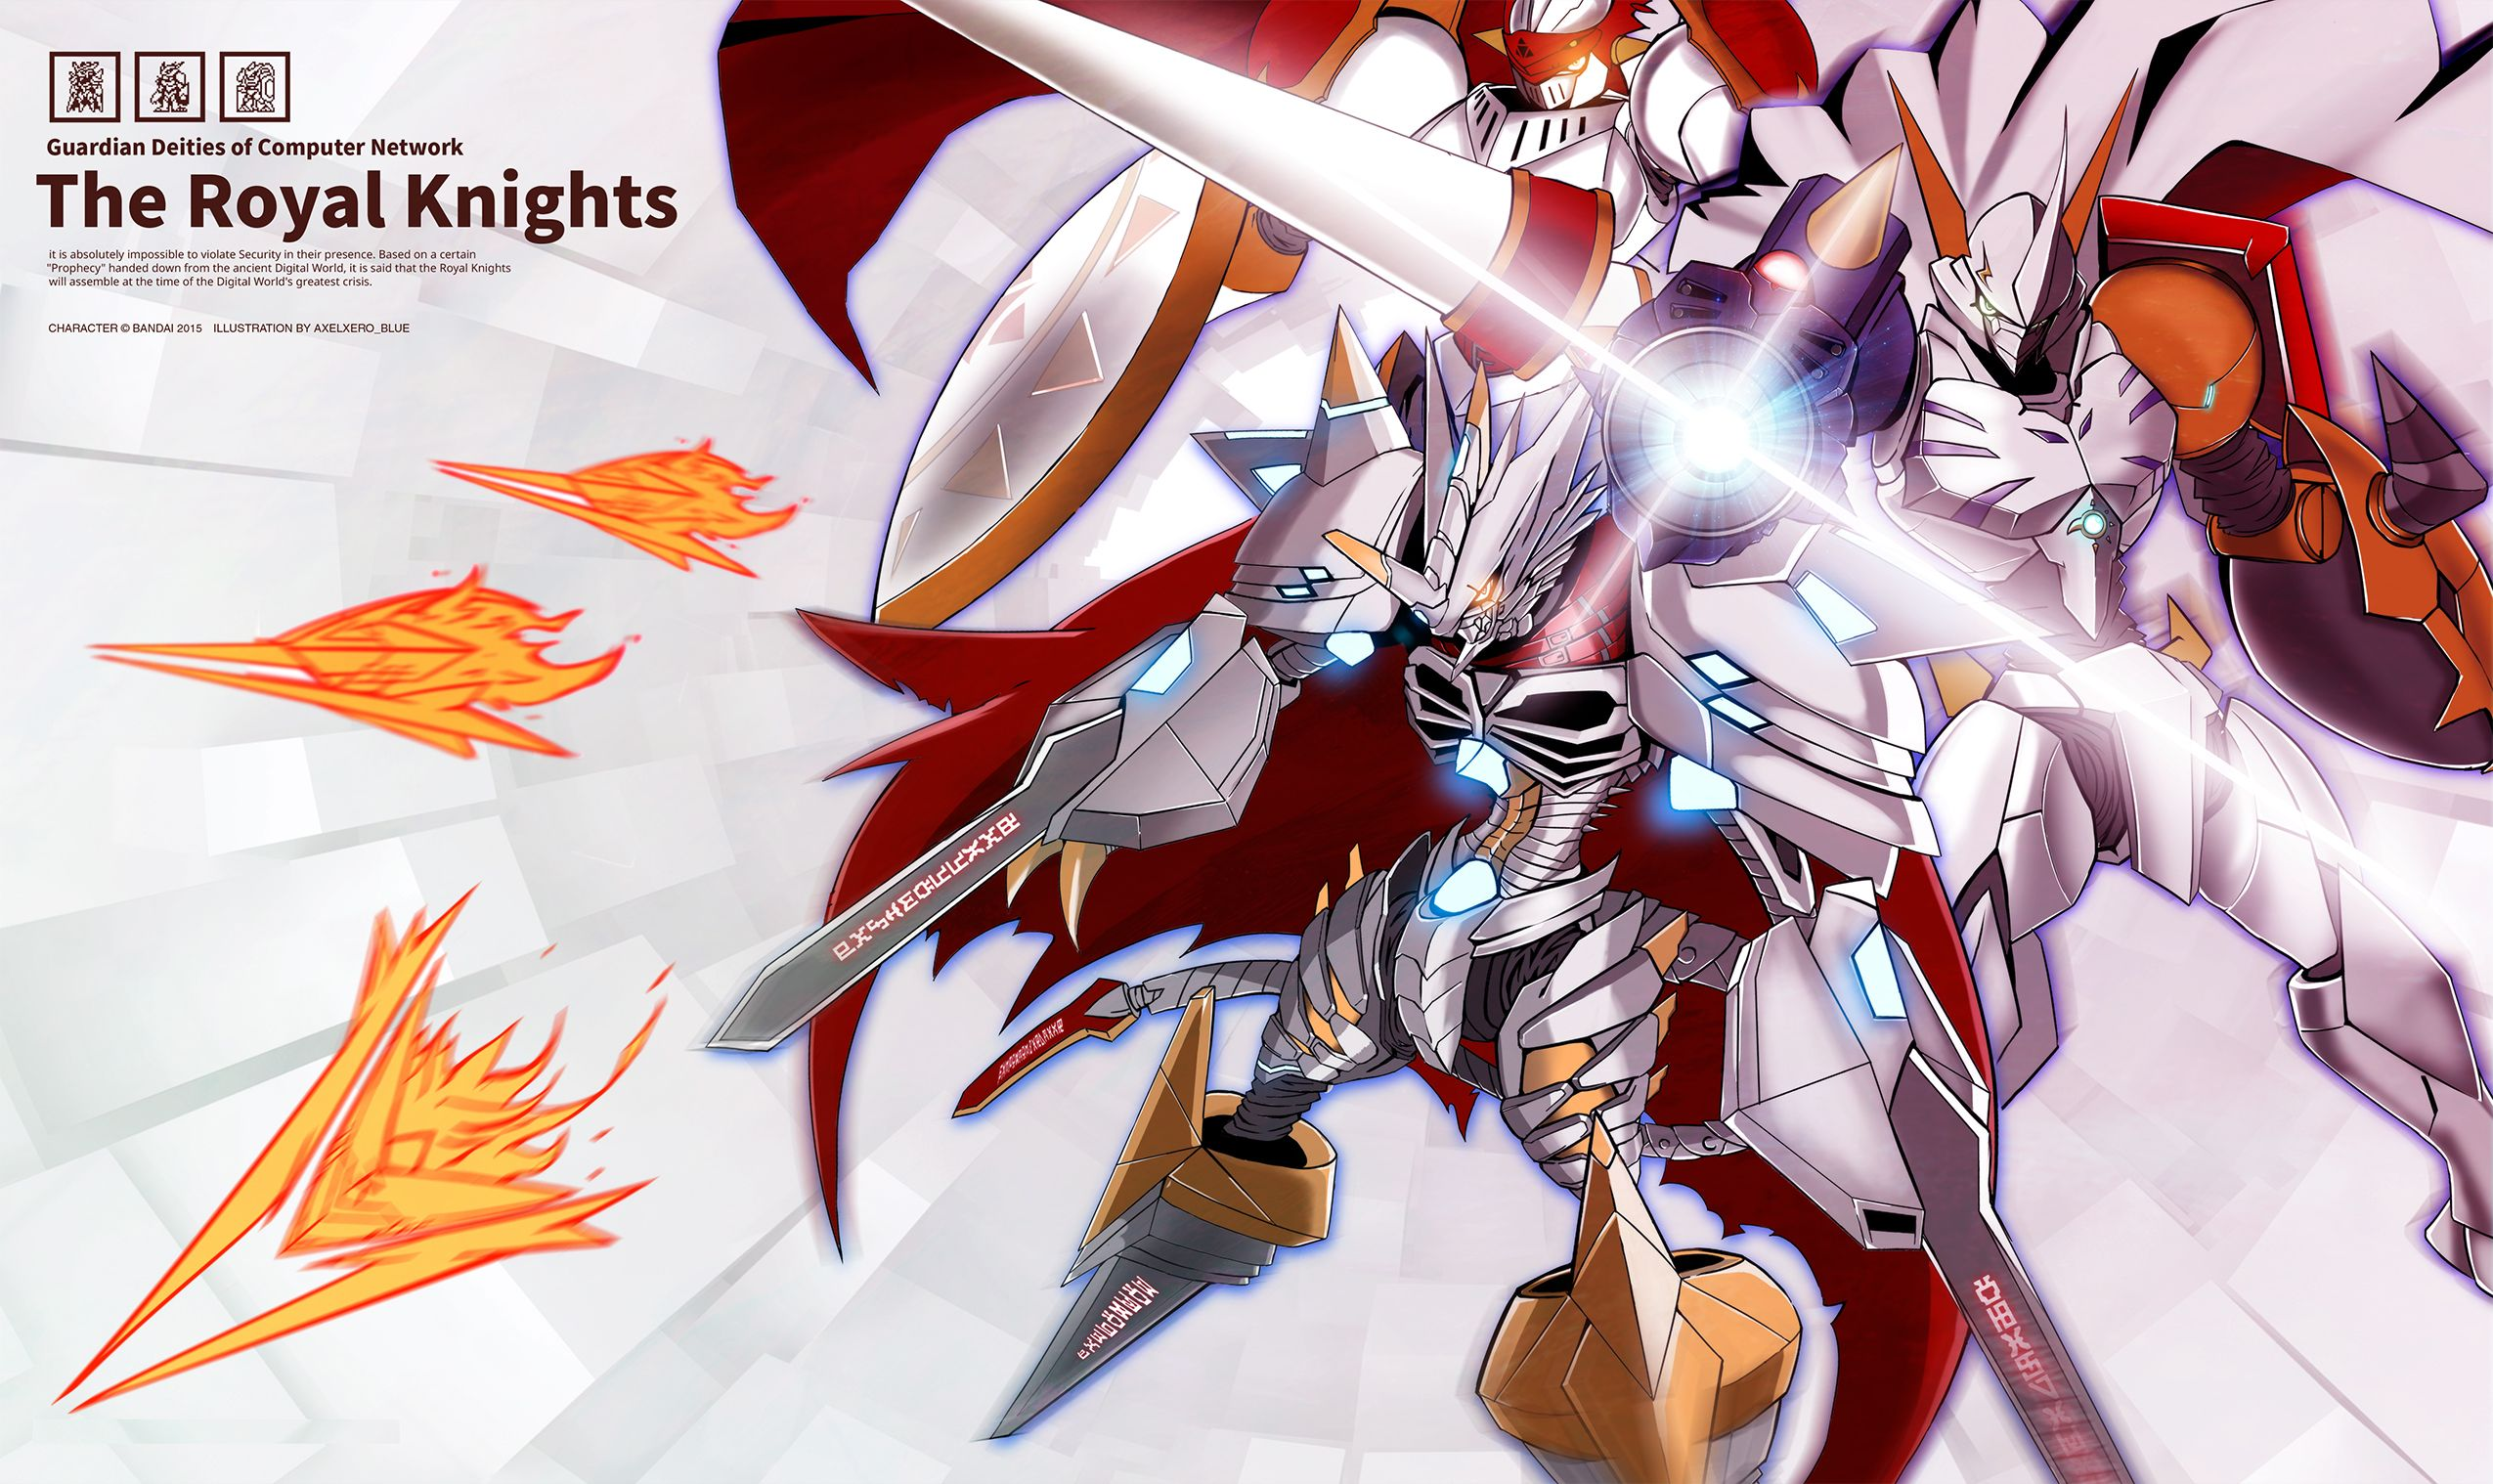 Royal Knight Digimon Omegamon Jesmon Dukemon Digimon Wallpaper Digimon Tamers Digimon Adventure Jual beli game online aman dan murah di itemku. royal knight digimon omegamon